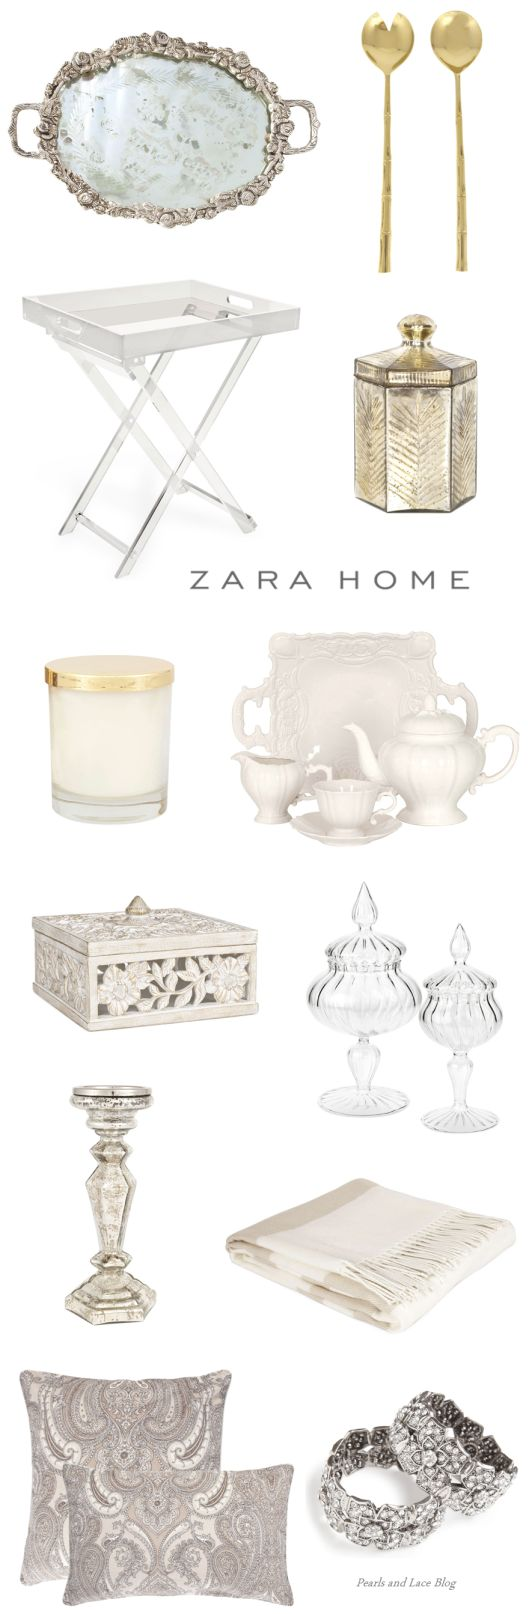 Zara Home by Pearls and Lace... absolutely loving Zara home !!